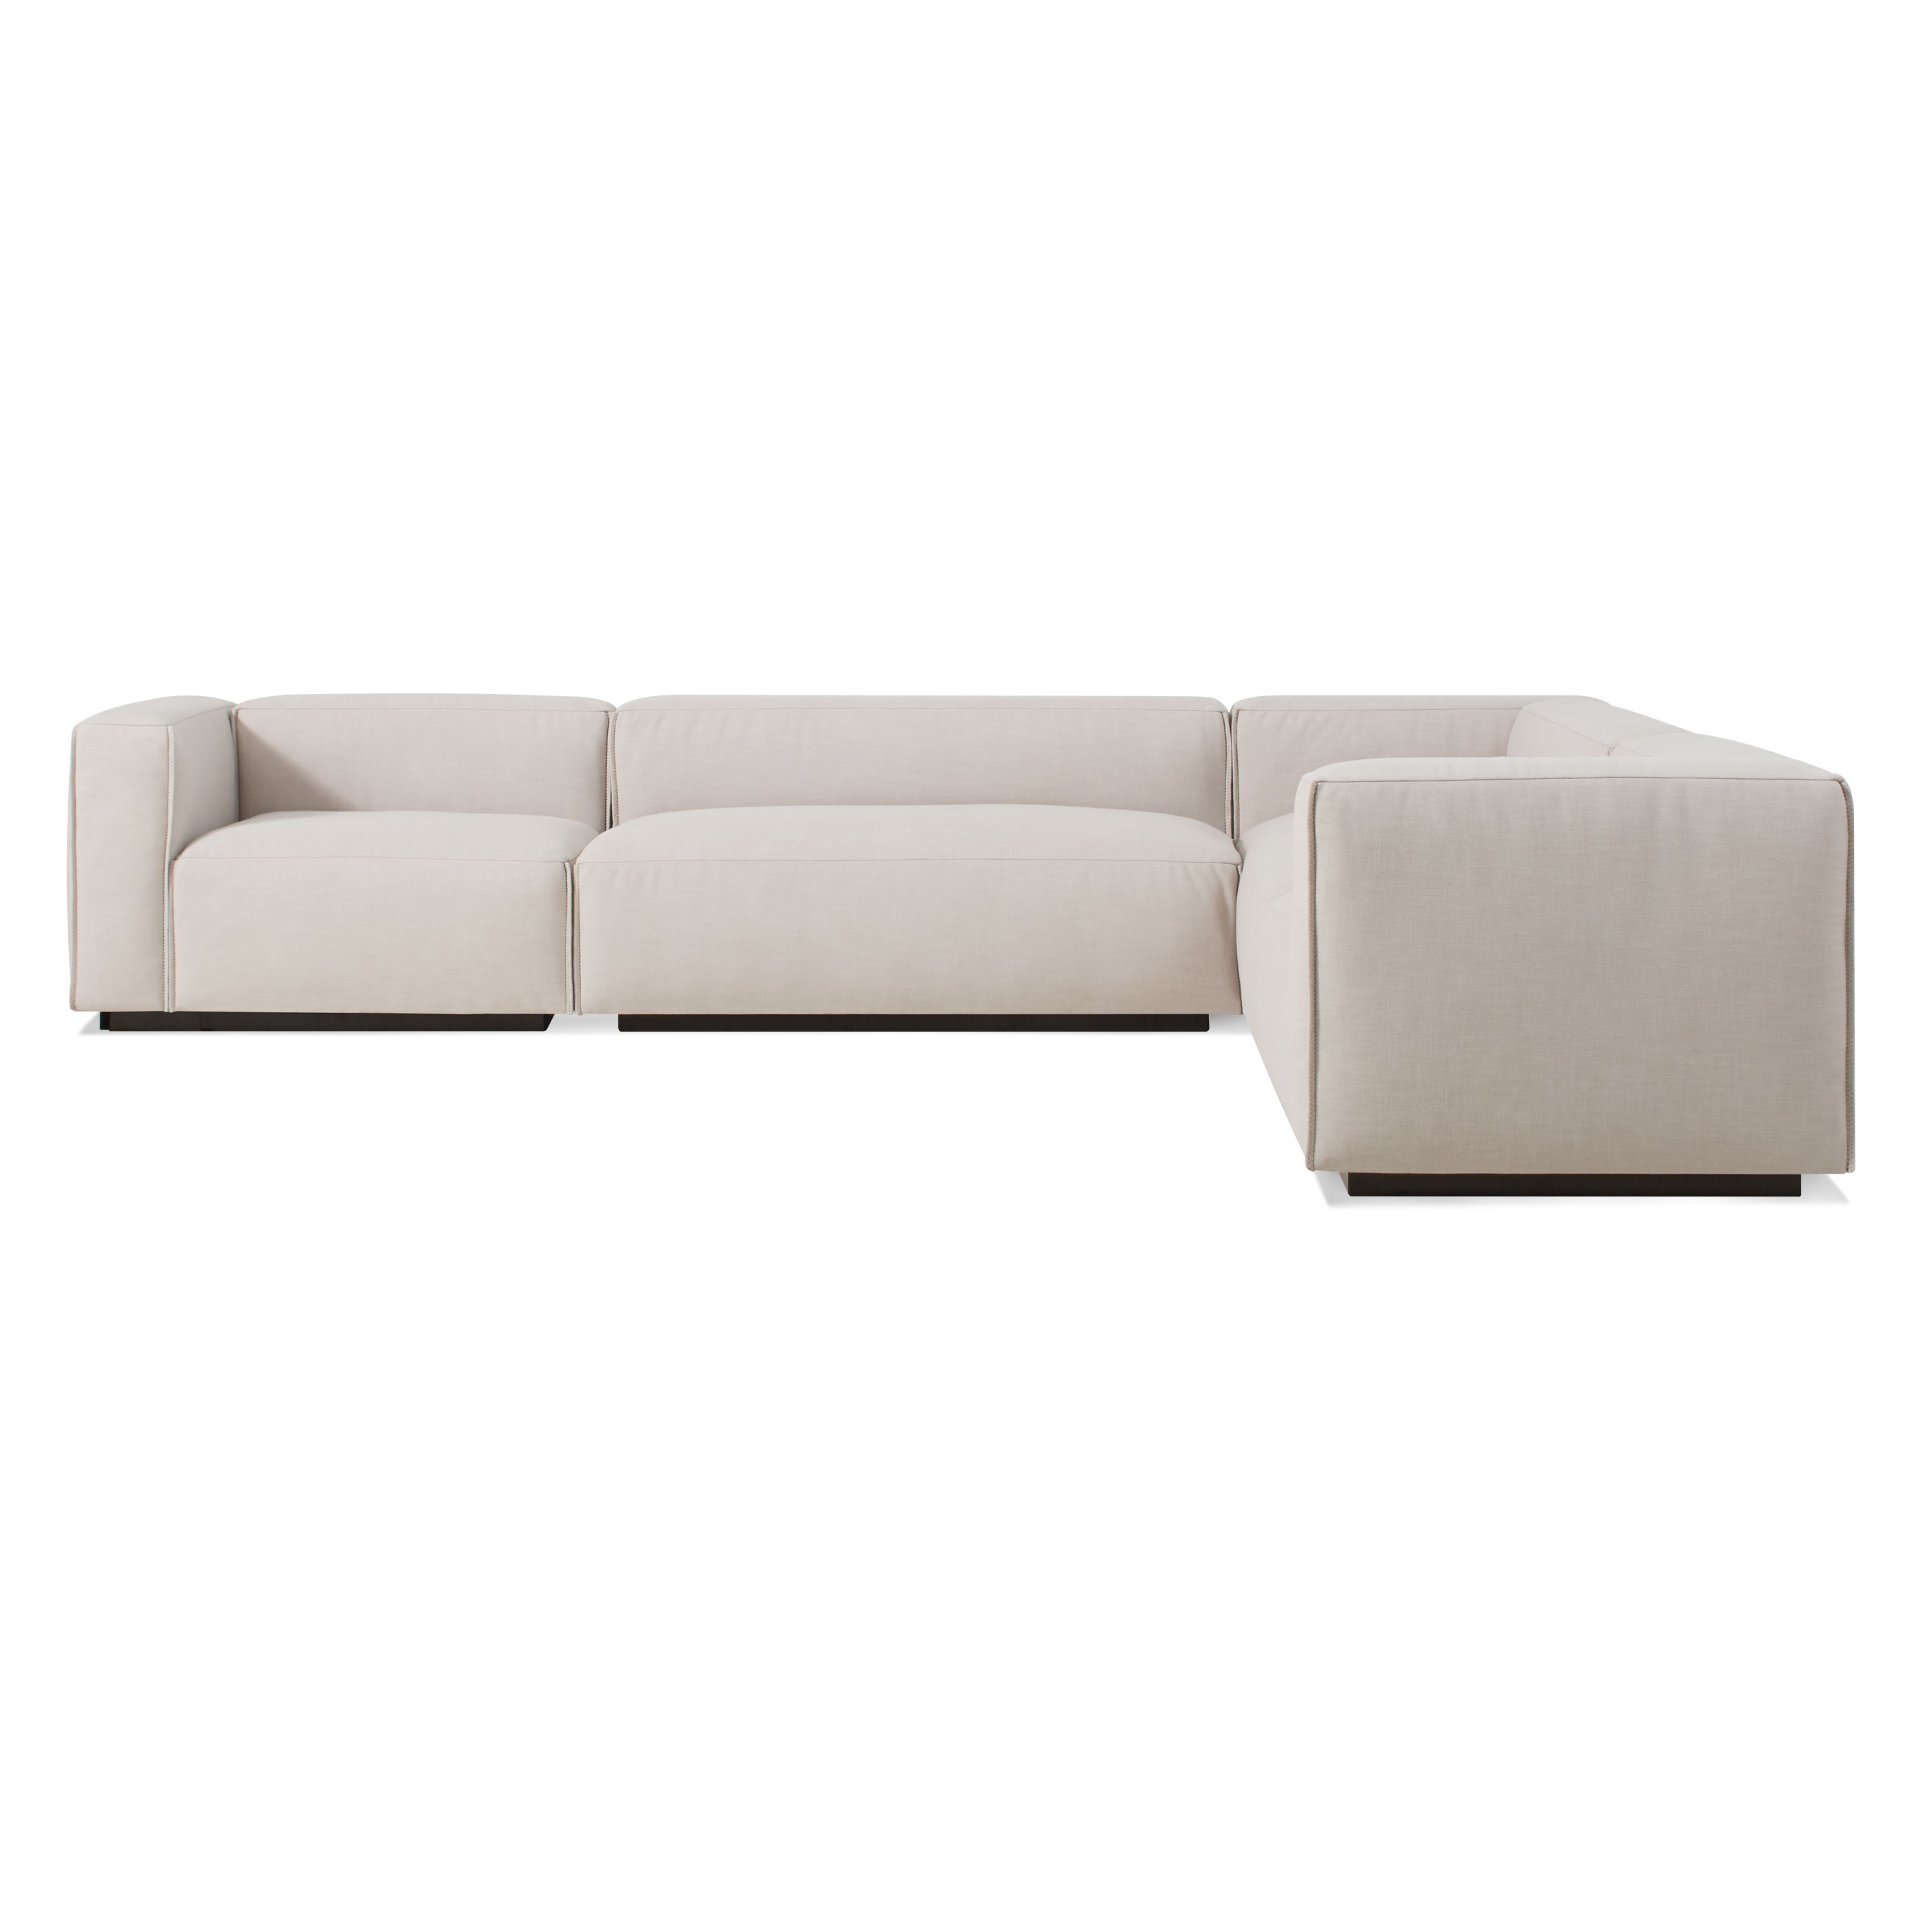 Cleon Large Modern Sectional Sofa (View 5 of 15)